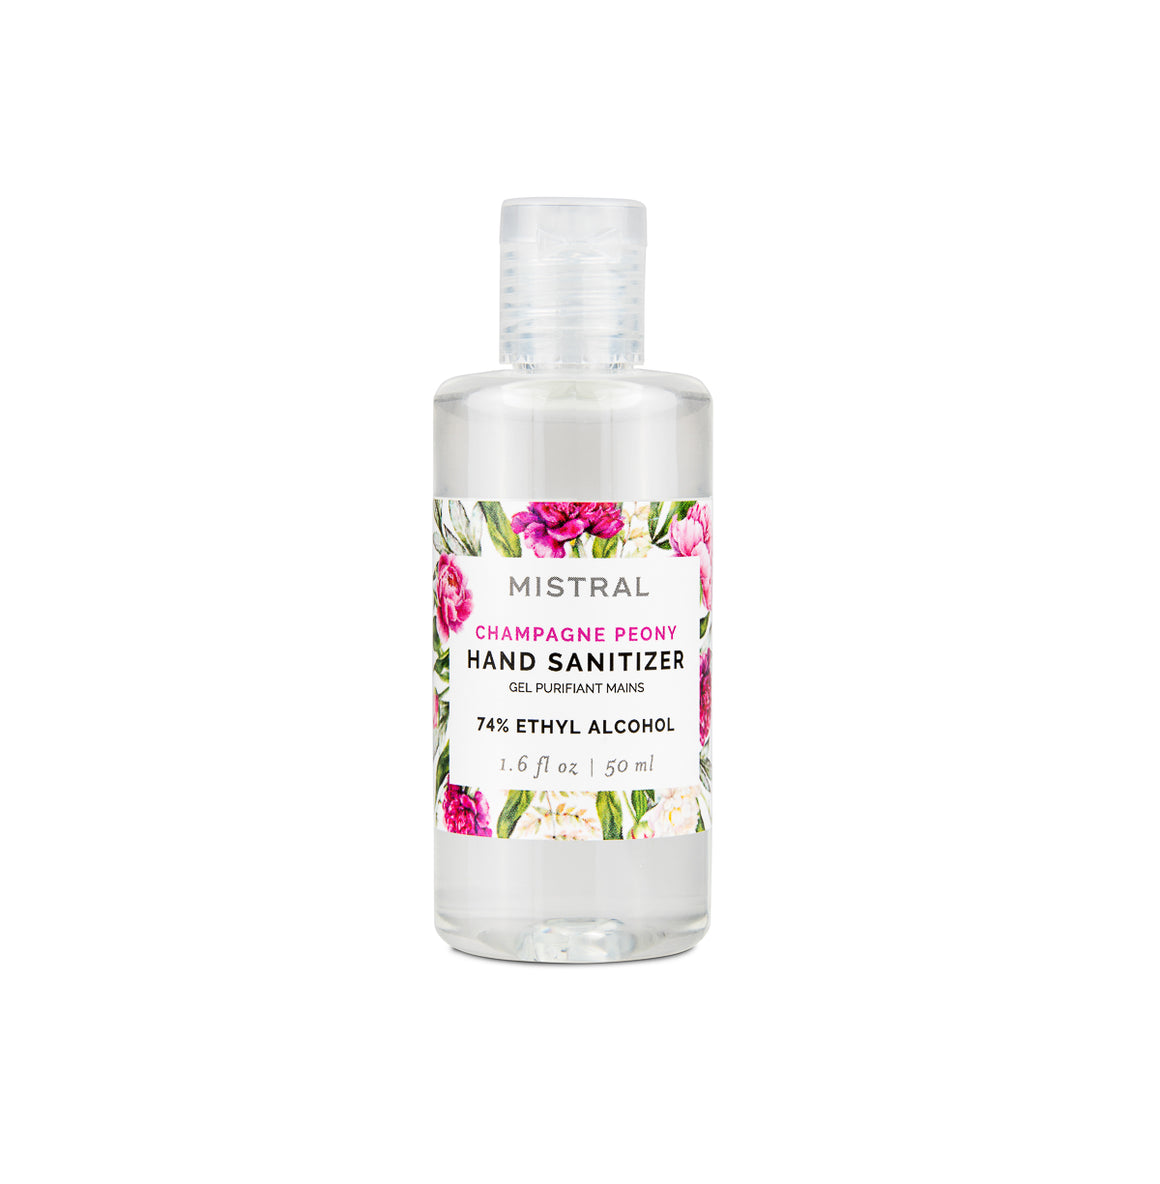 CHAMPAGNE PEONY HAND SANITIZER